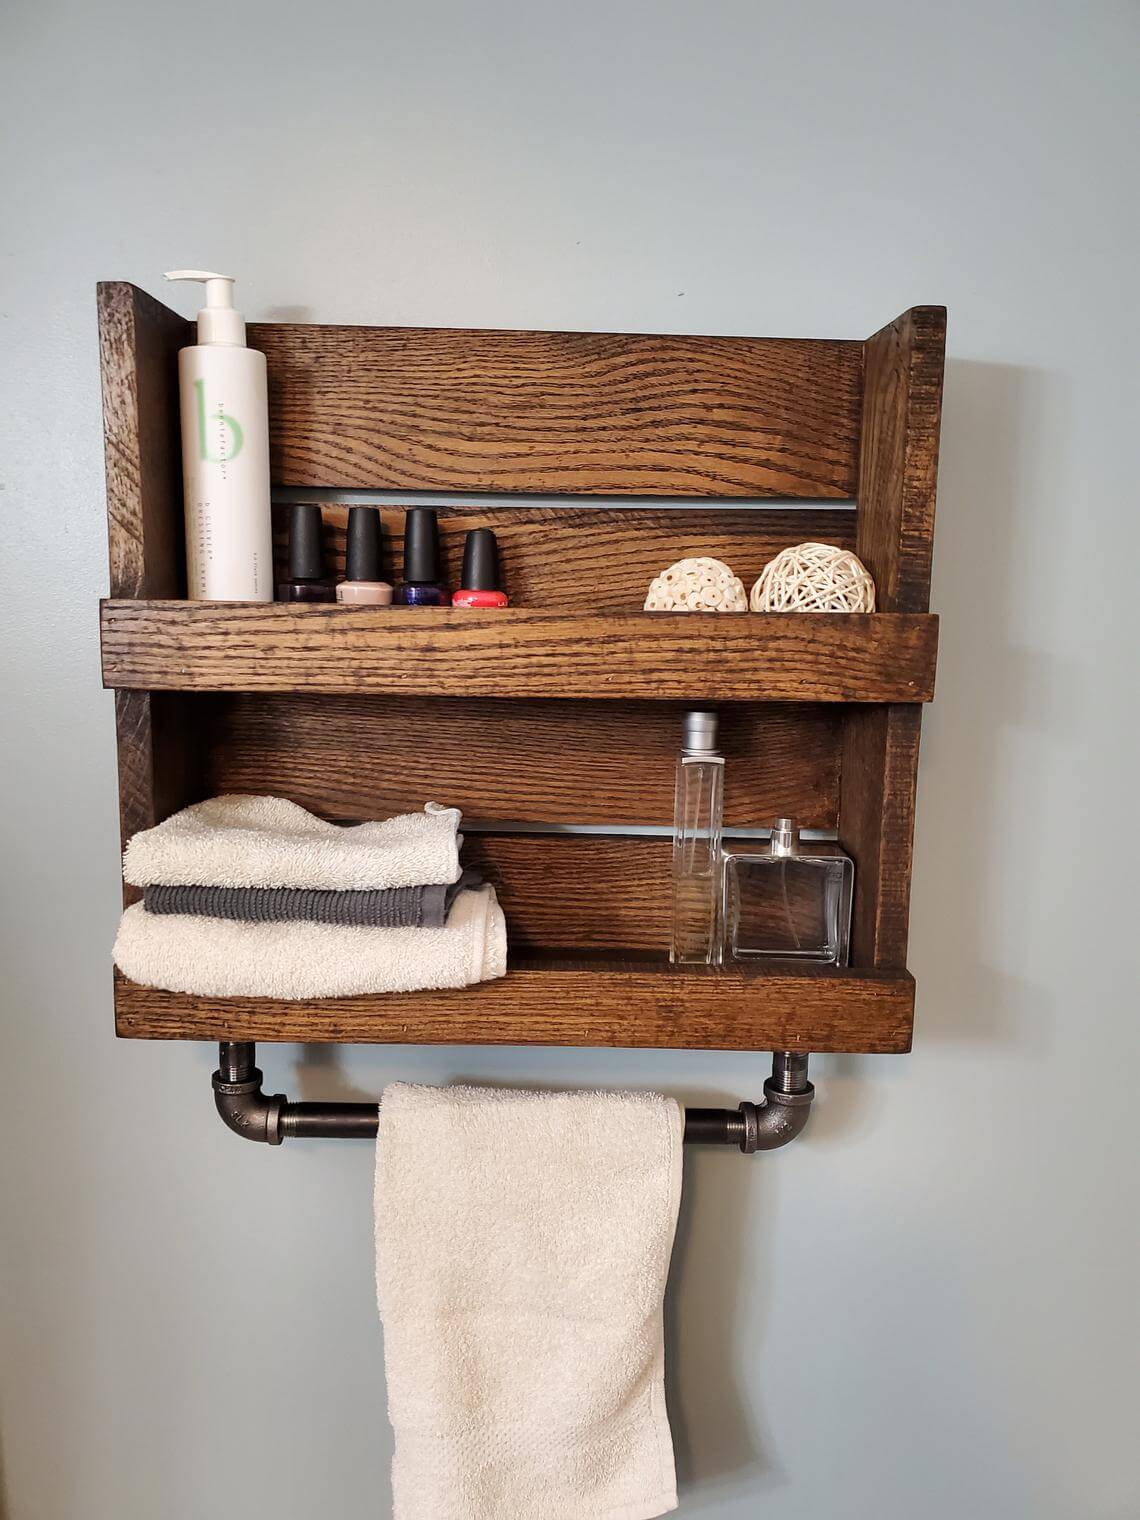 Rustic Crate Storage Shelf with Towel Rack